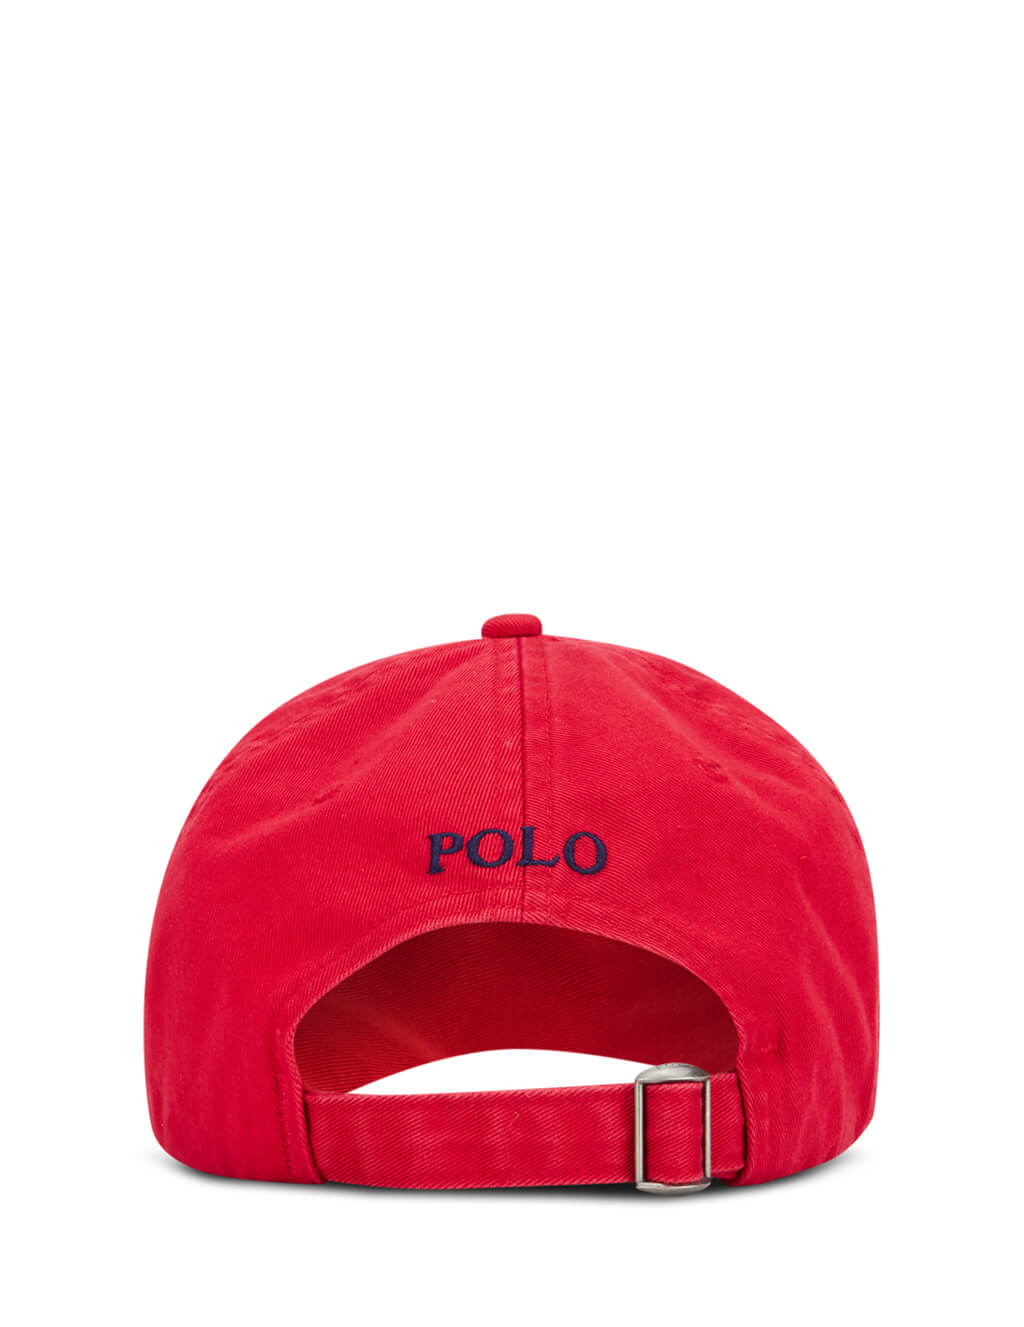 Polo Ralph Lauren Men's Red Cotton Chino Baseball Cap 710548524002